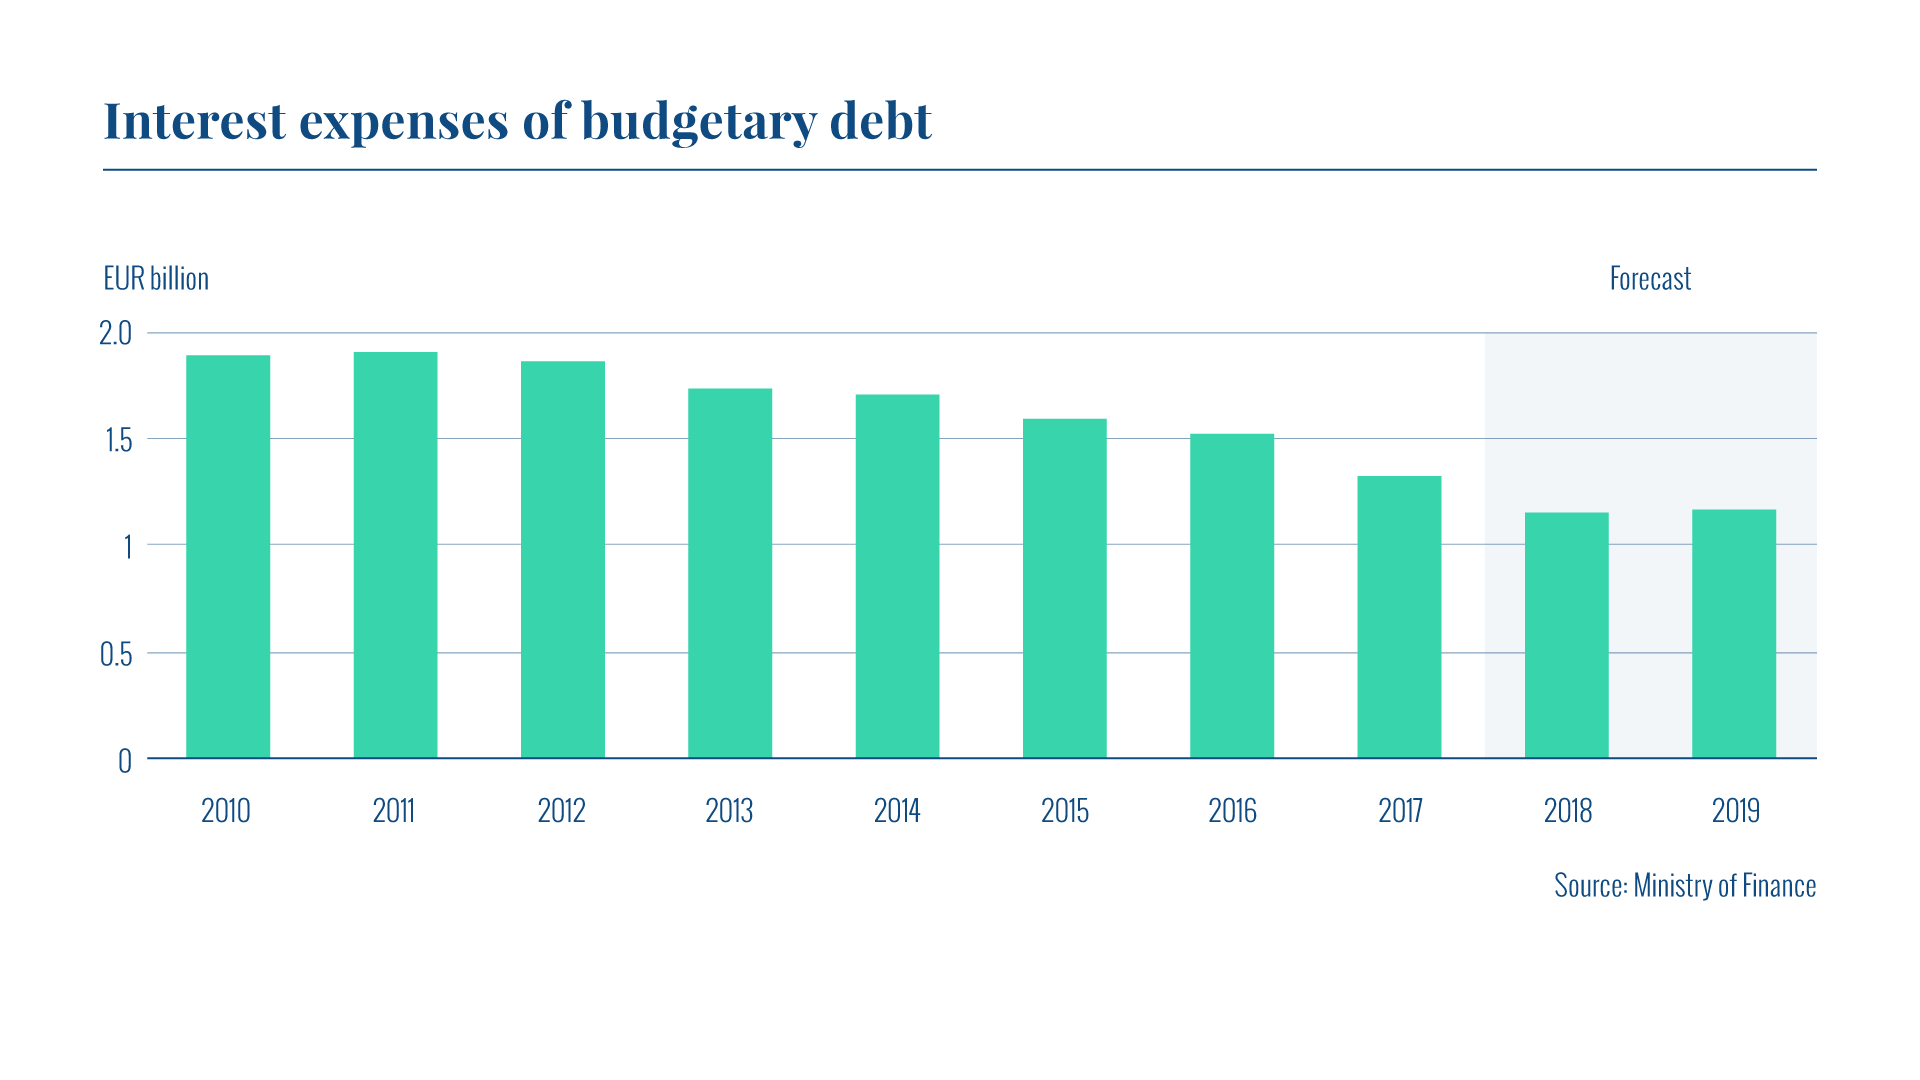 The graph presents the annual interest expenses of budgetary debt in 2010-19. In 2017, the interest expenses were EUR 1.33 billion. The forecast for 2018 is EUR 1.15 billion.